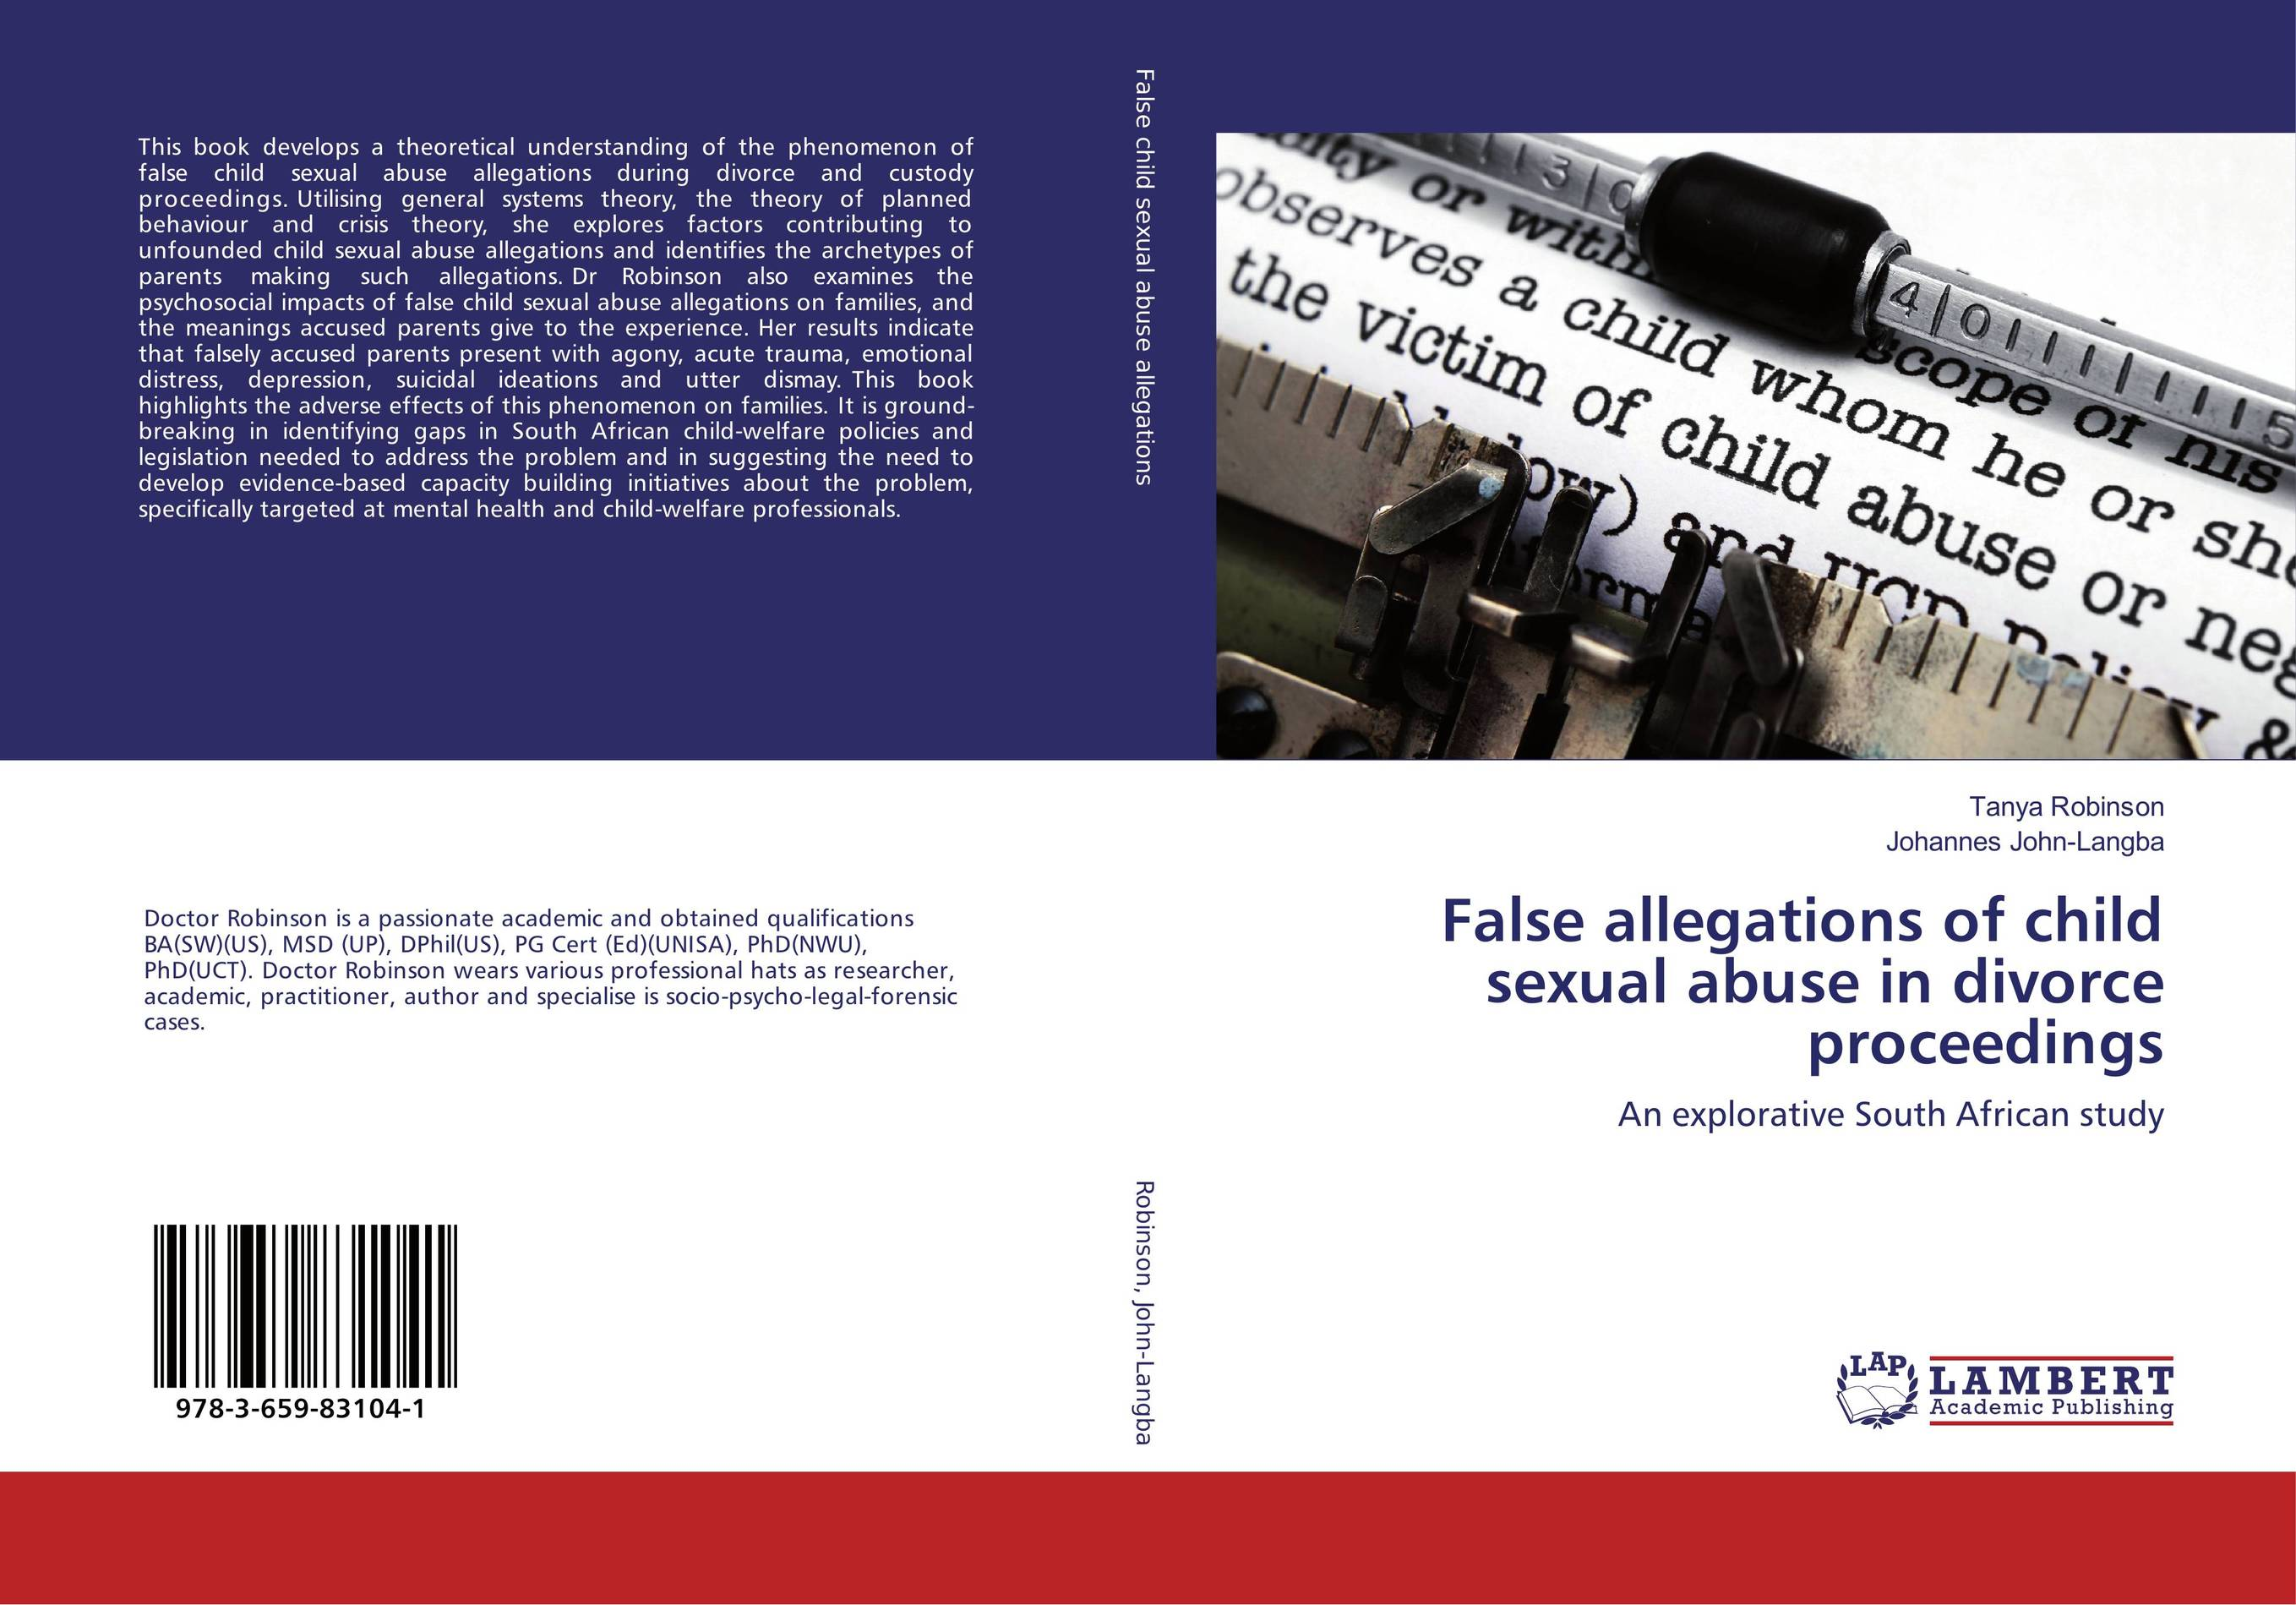 False allegations of child sexual abuse in divorce proceedings robert m reece treatment of child abuse – common ground for mental health medical and legal practitioners